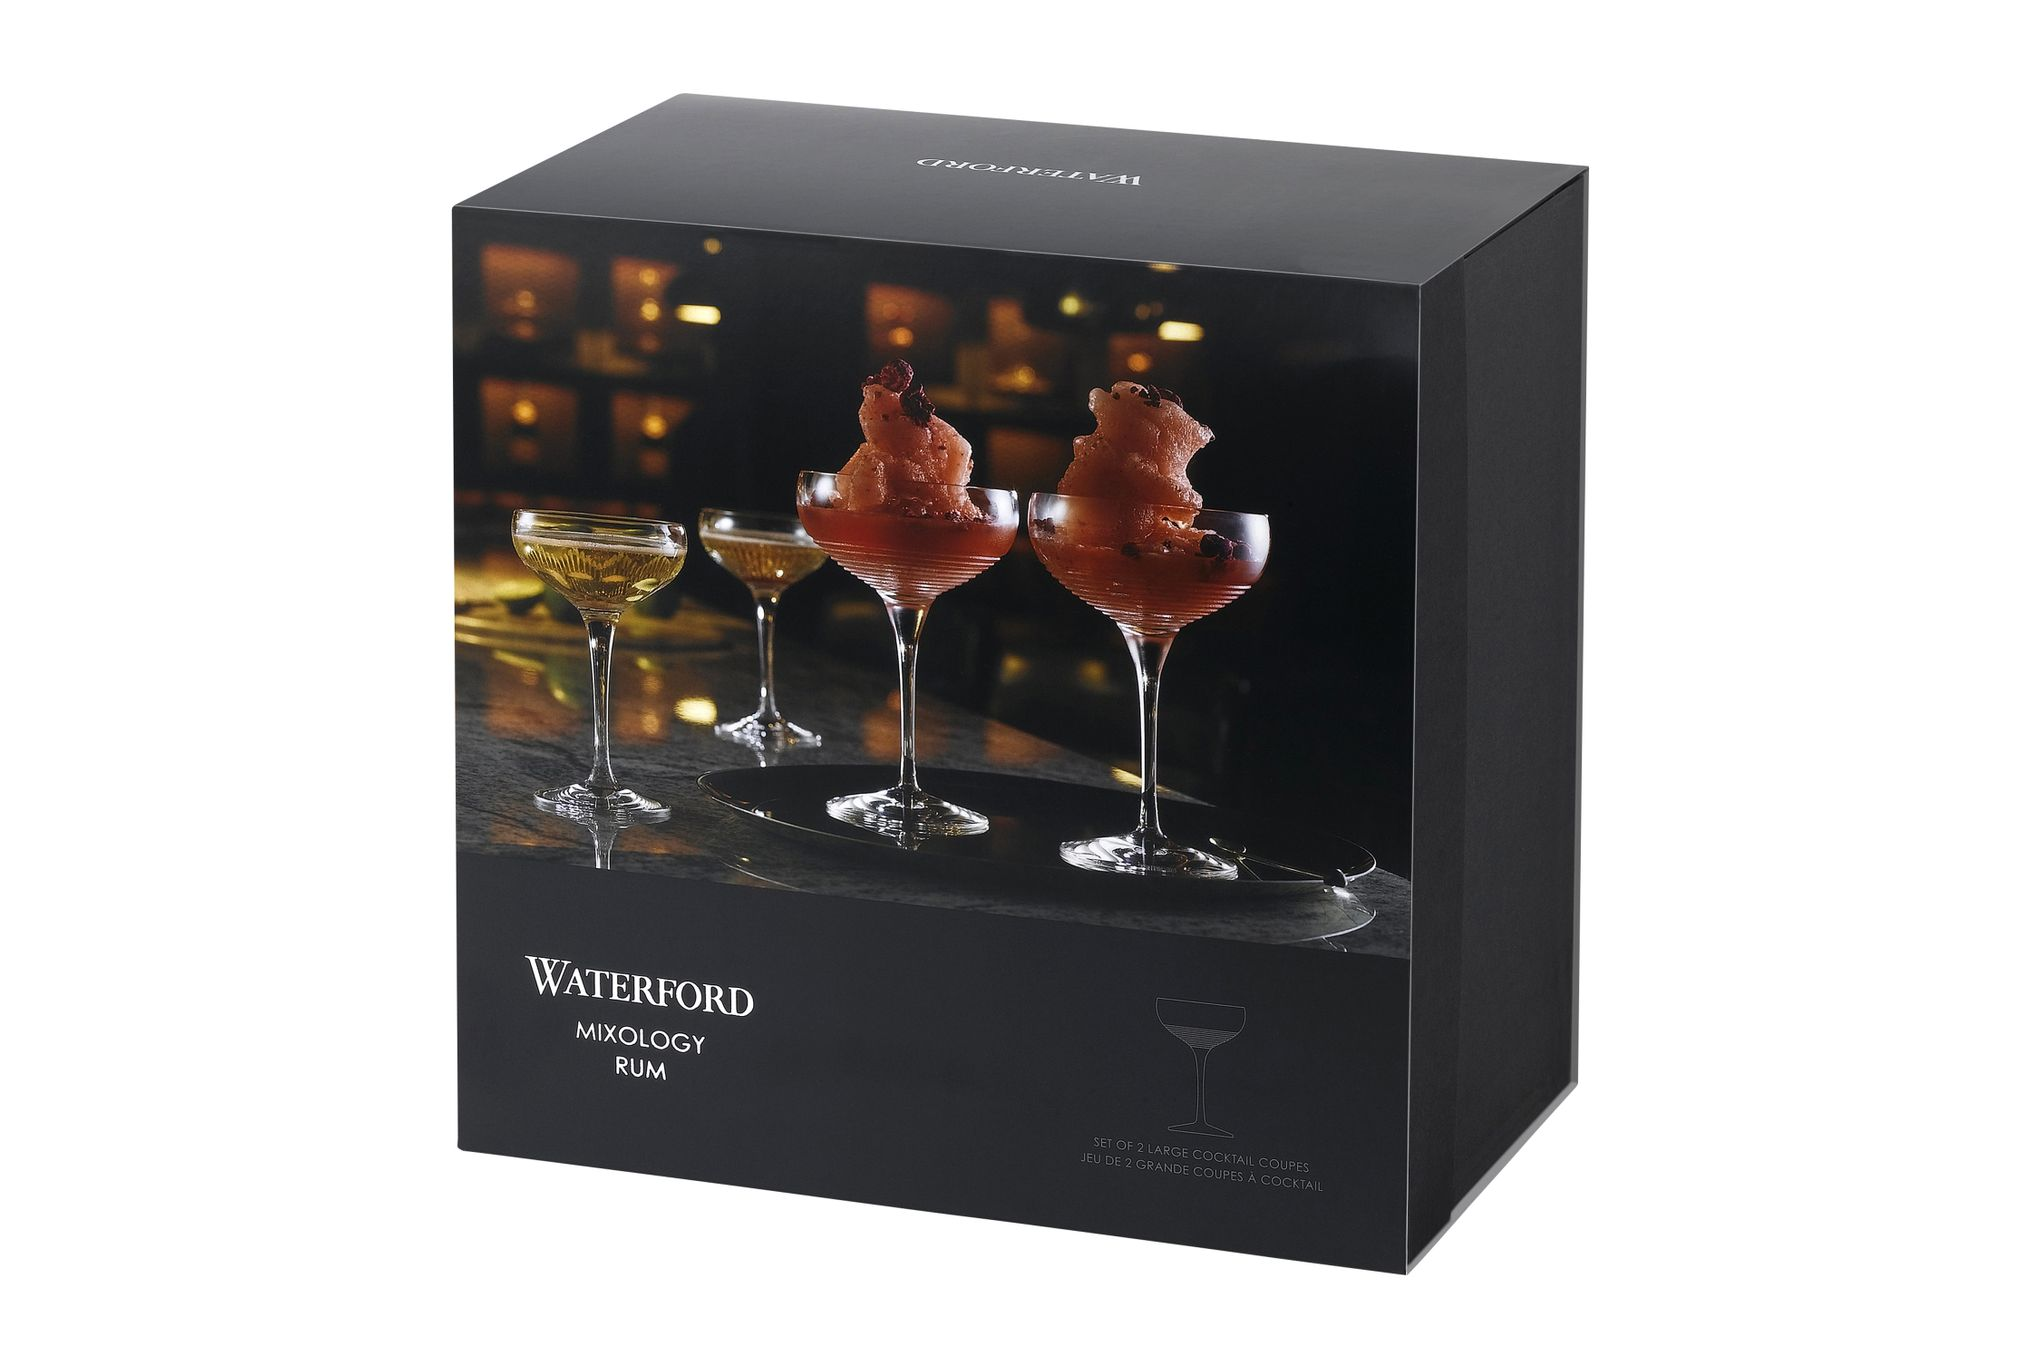 Waterford Mixology Coupe Glass - Set of 2 12.1 x 18cm, 415ml thumb 2